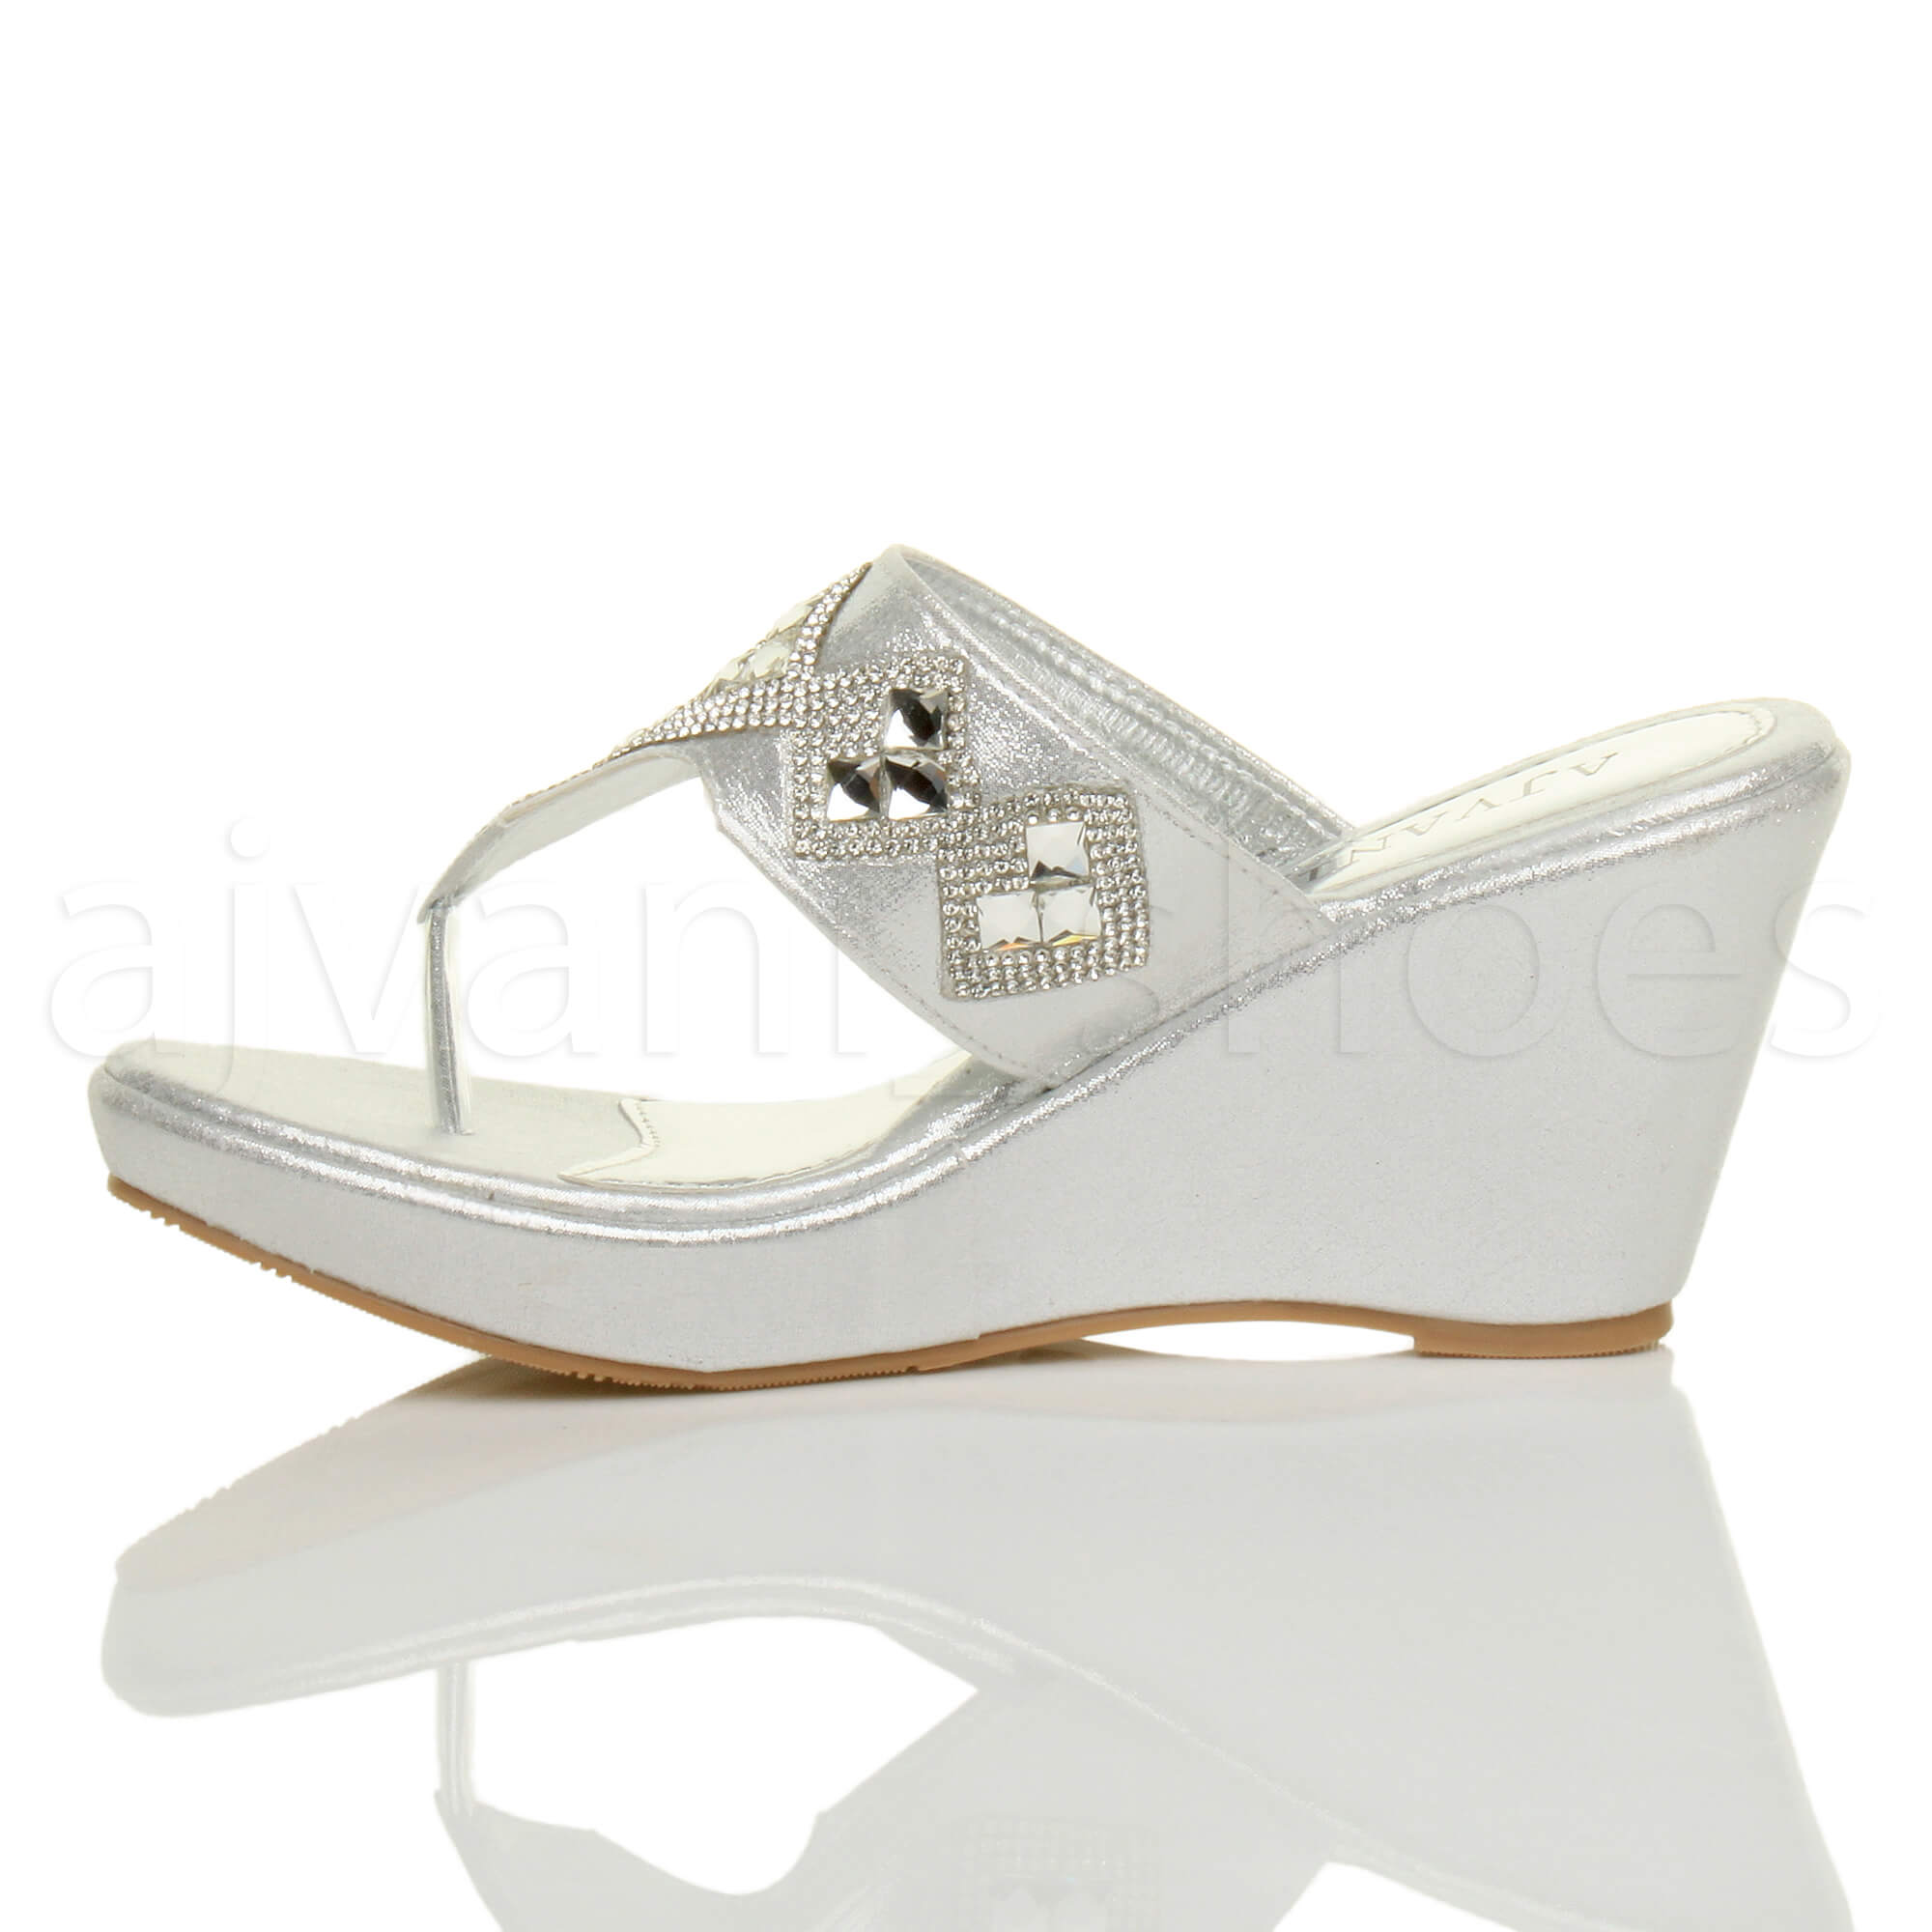 WOMENS-LADIES-HIGH-WEDGE-T-BAR-TOE-POST-DIAMANTE-PLATFORM-MULES-SANDALS-SIZE thumbnail 12